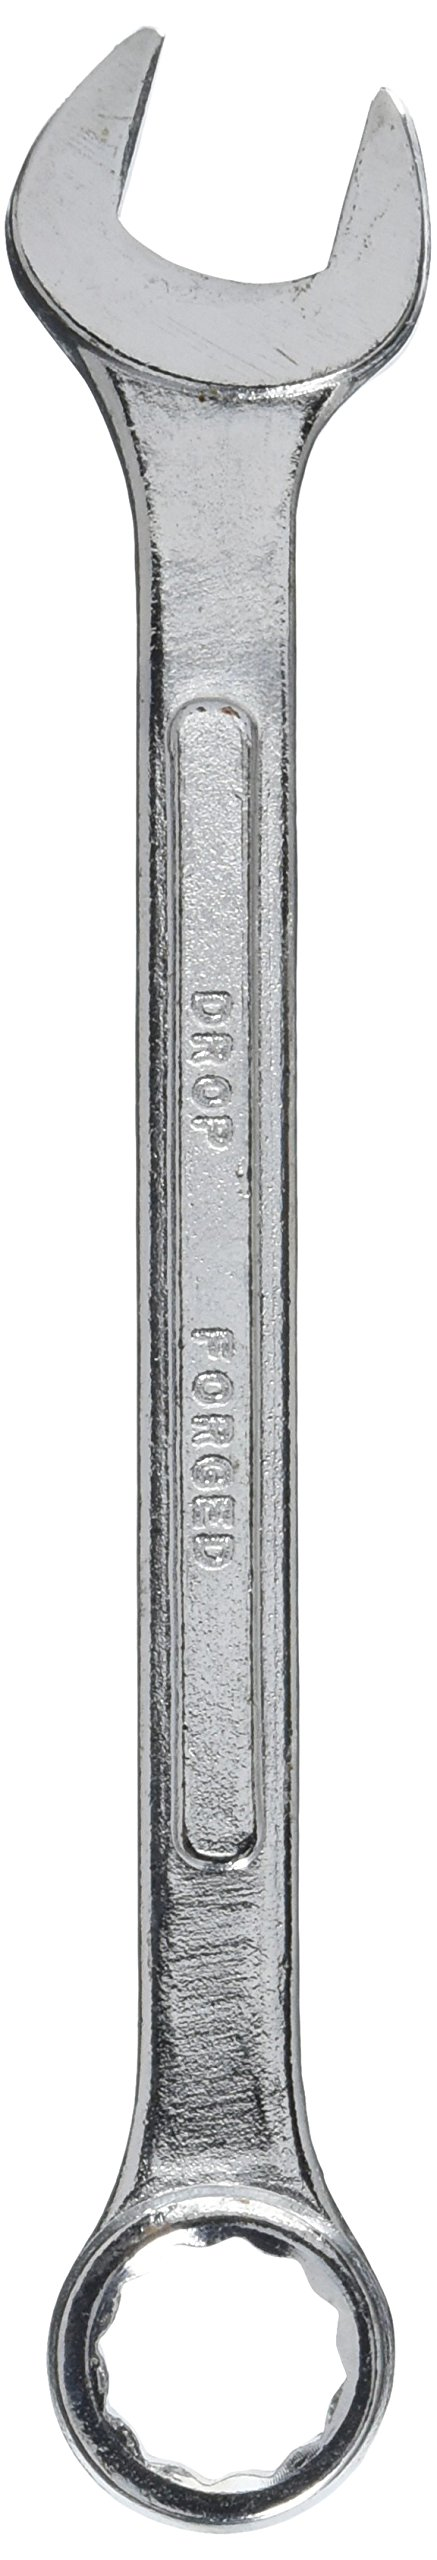 Uxcell Manual 12-Point Double-Ended Combination Wrench, Silver Tone by uxcell (Image #1)